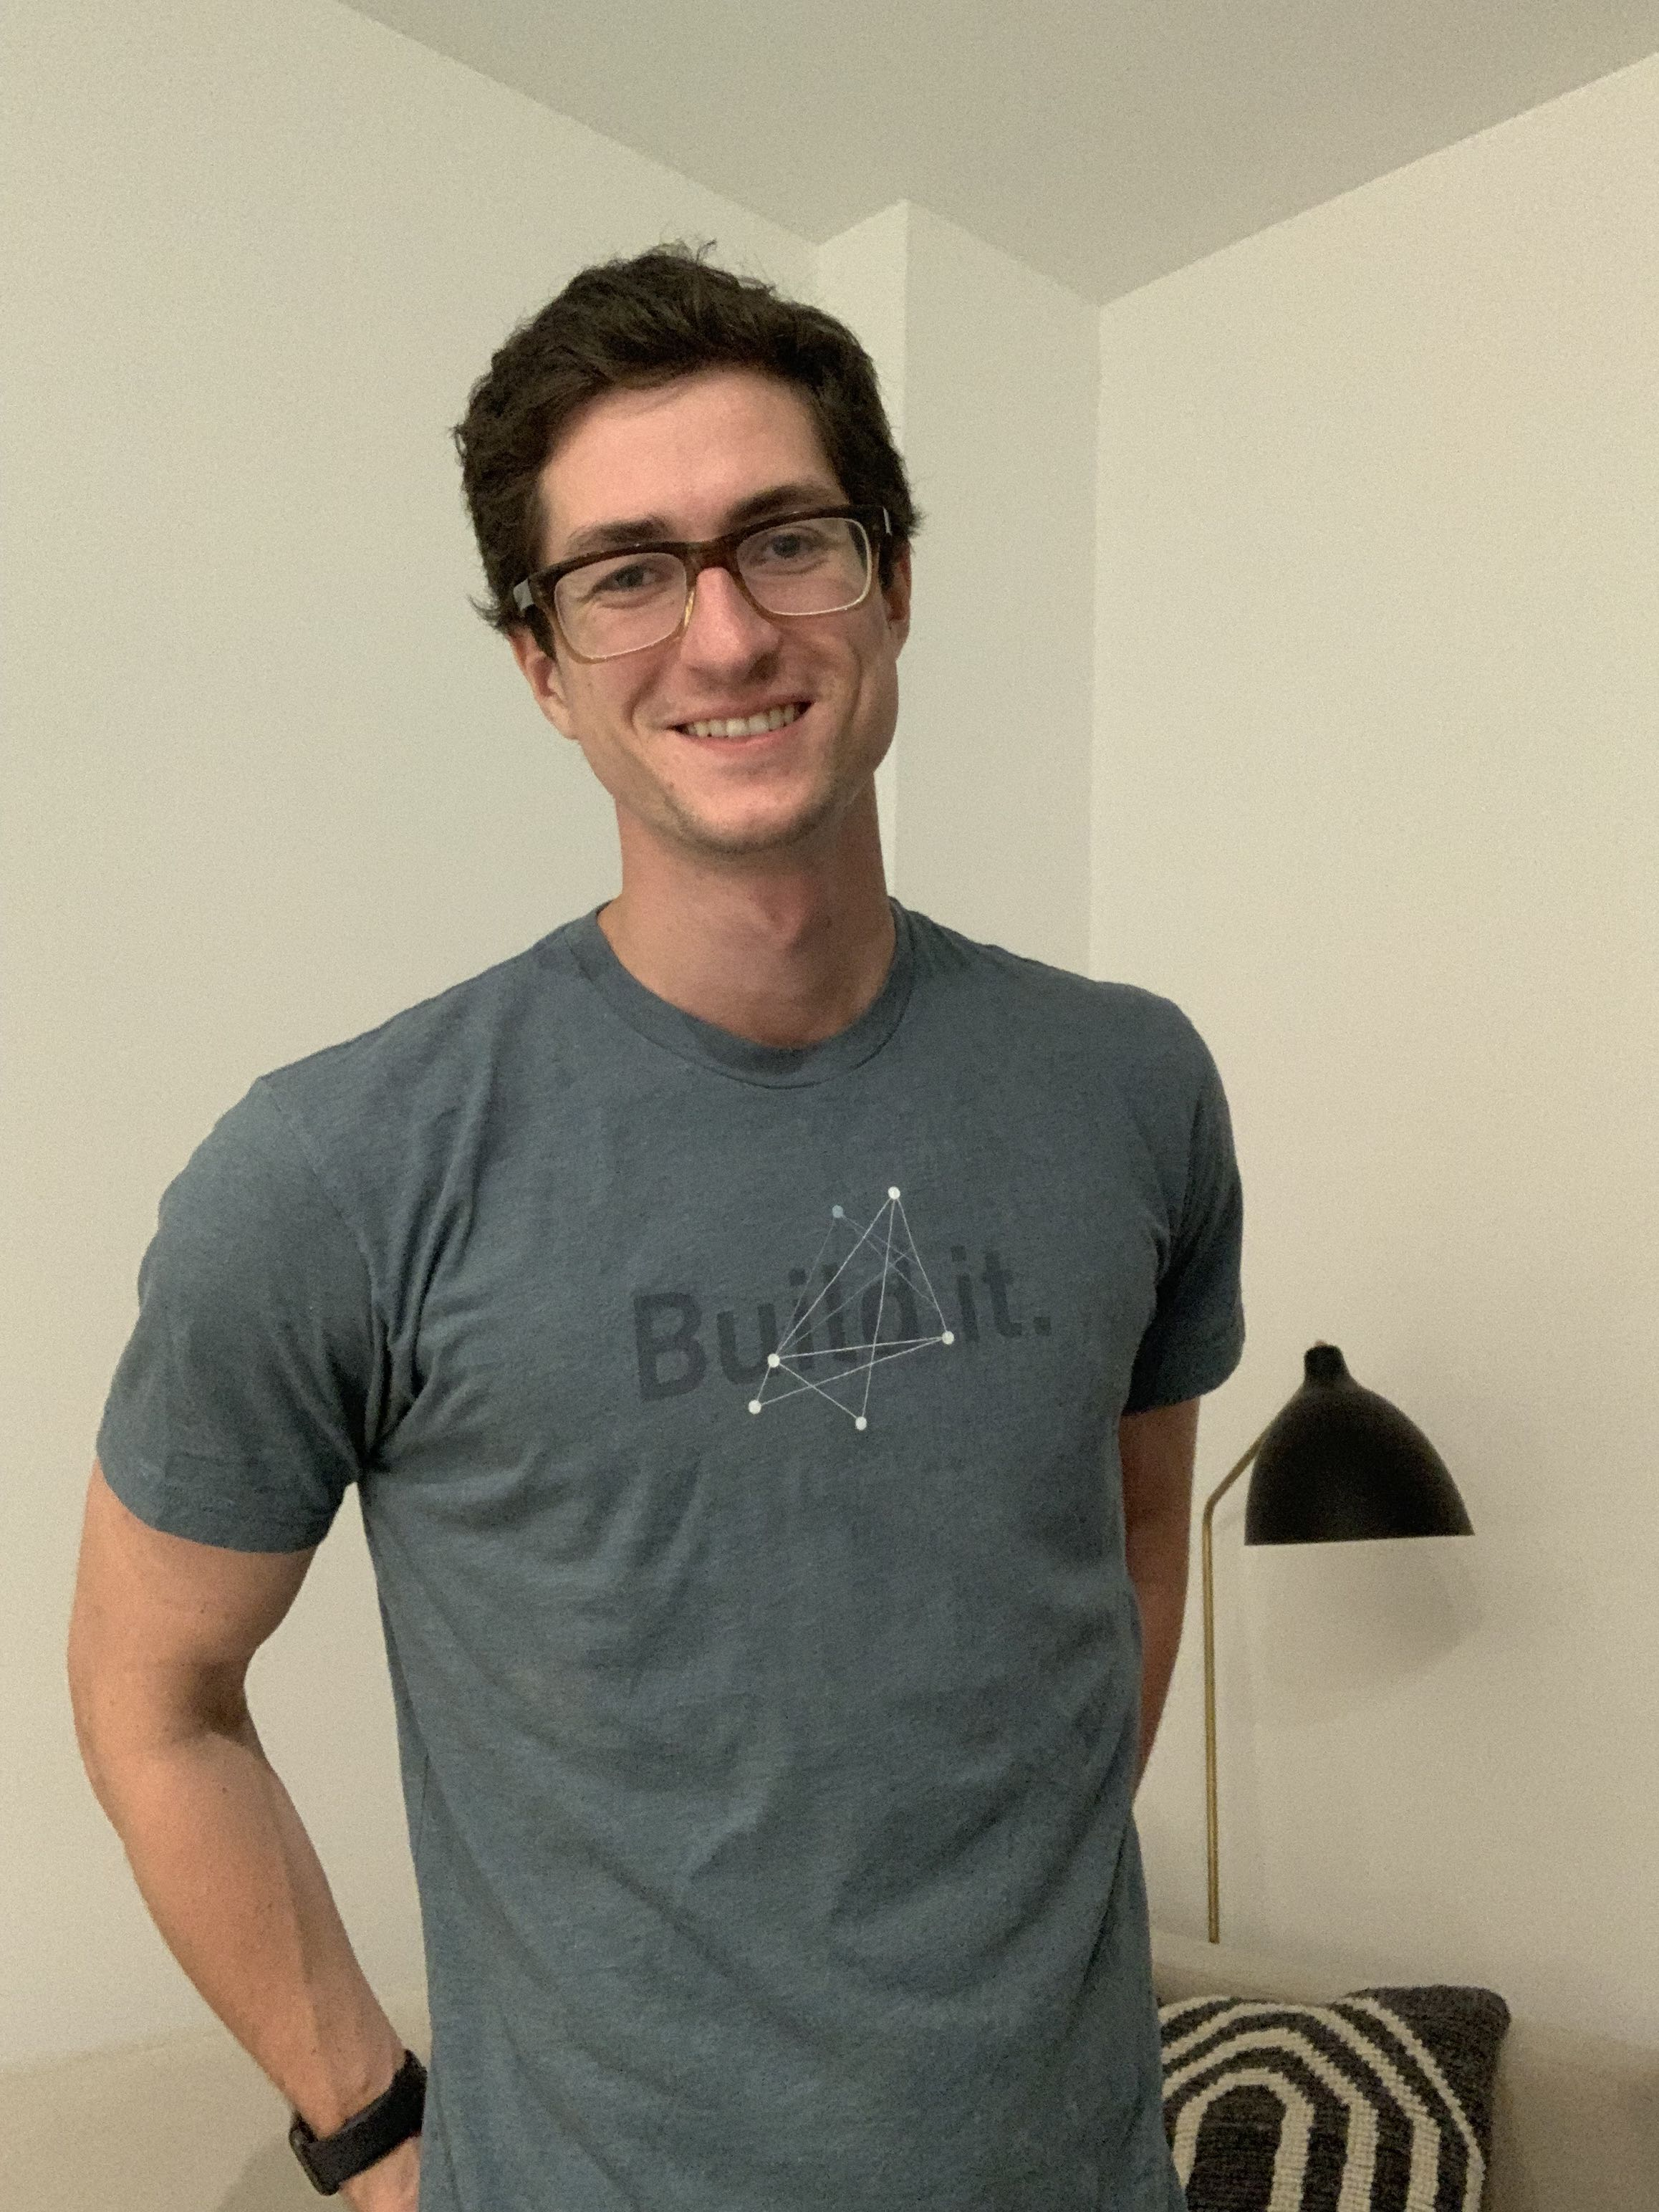 Channing Pear, Founder, Hard Tech Miami